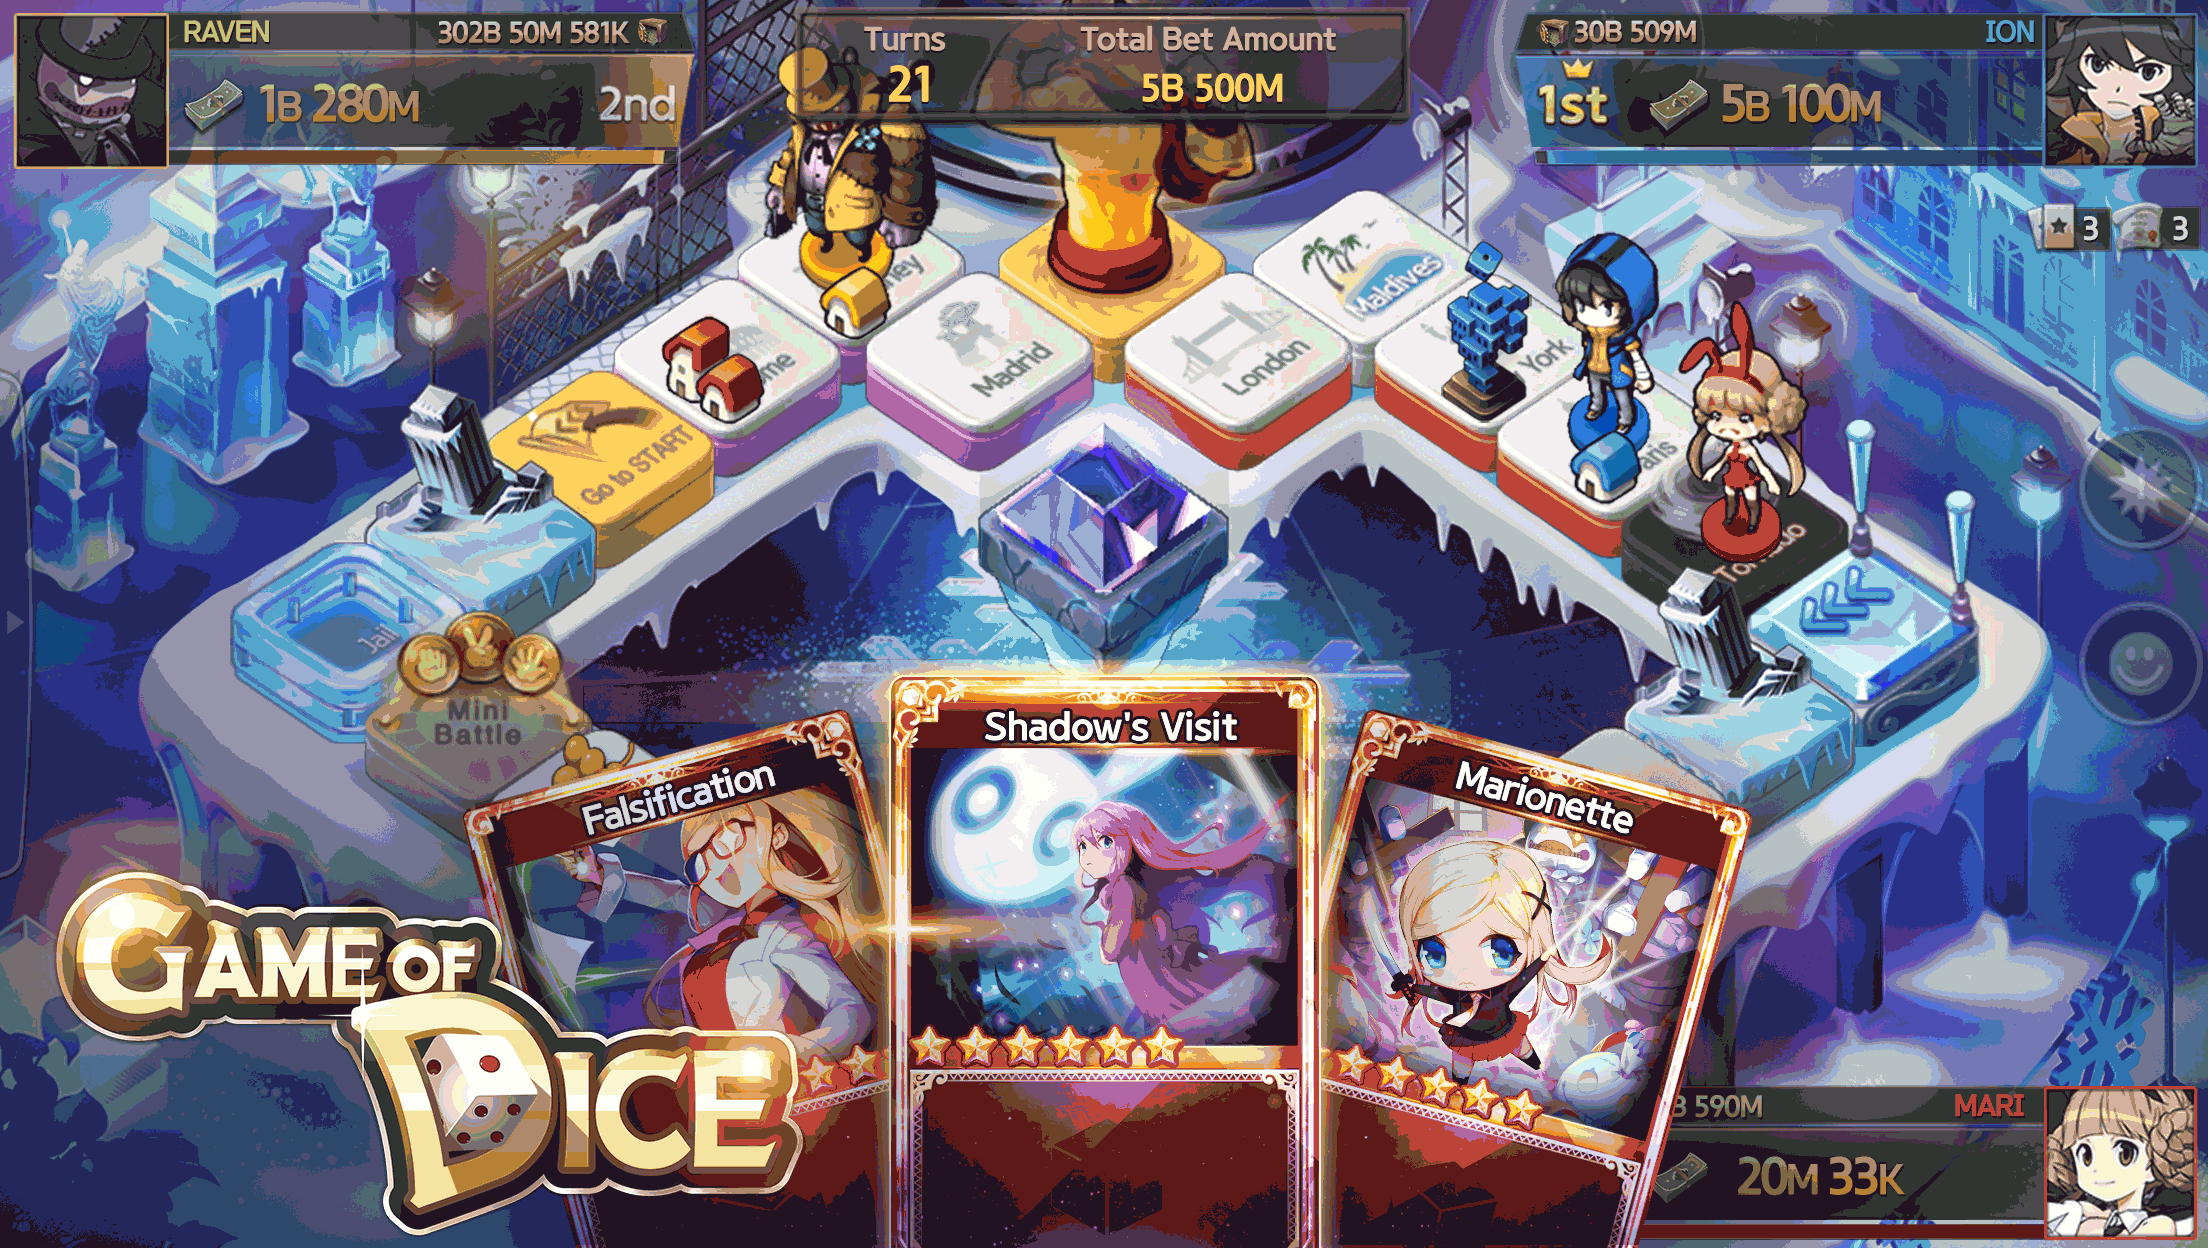 Game of Dice's winter update will have you rolling in a winter wonderland